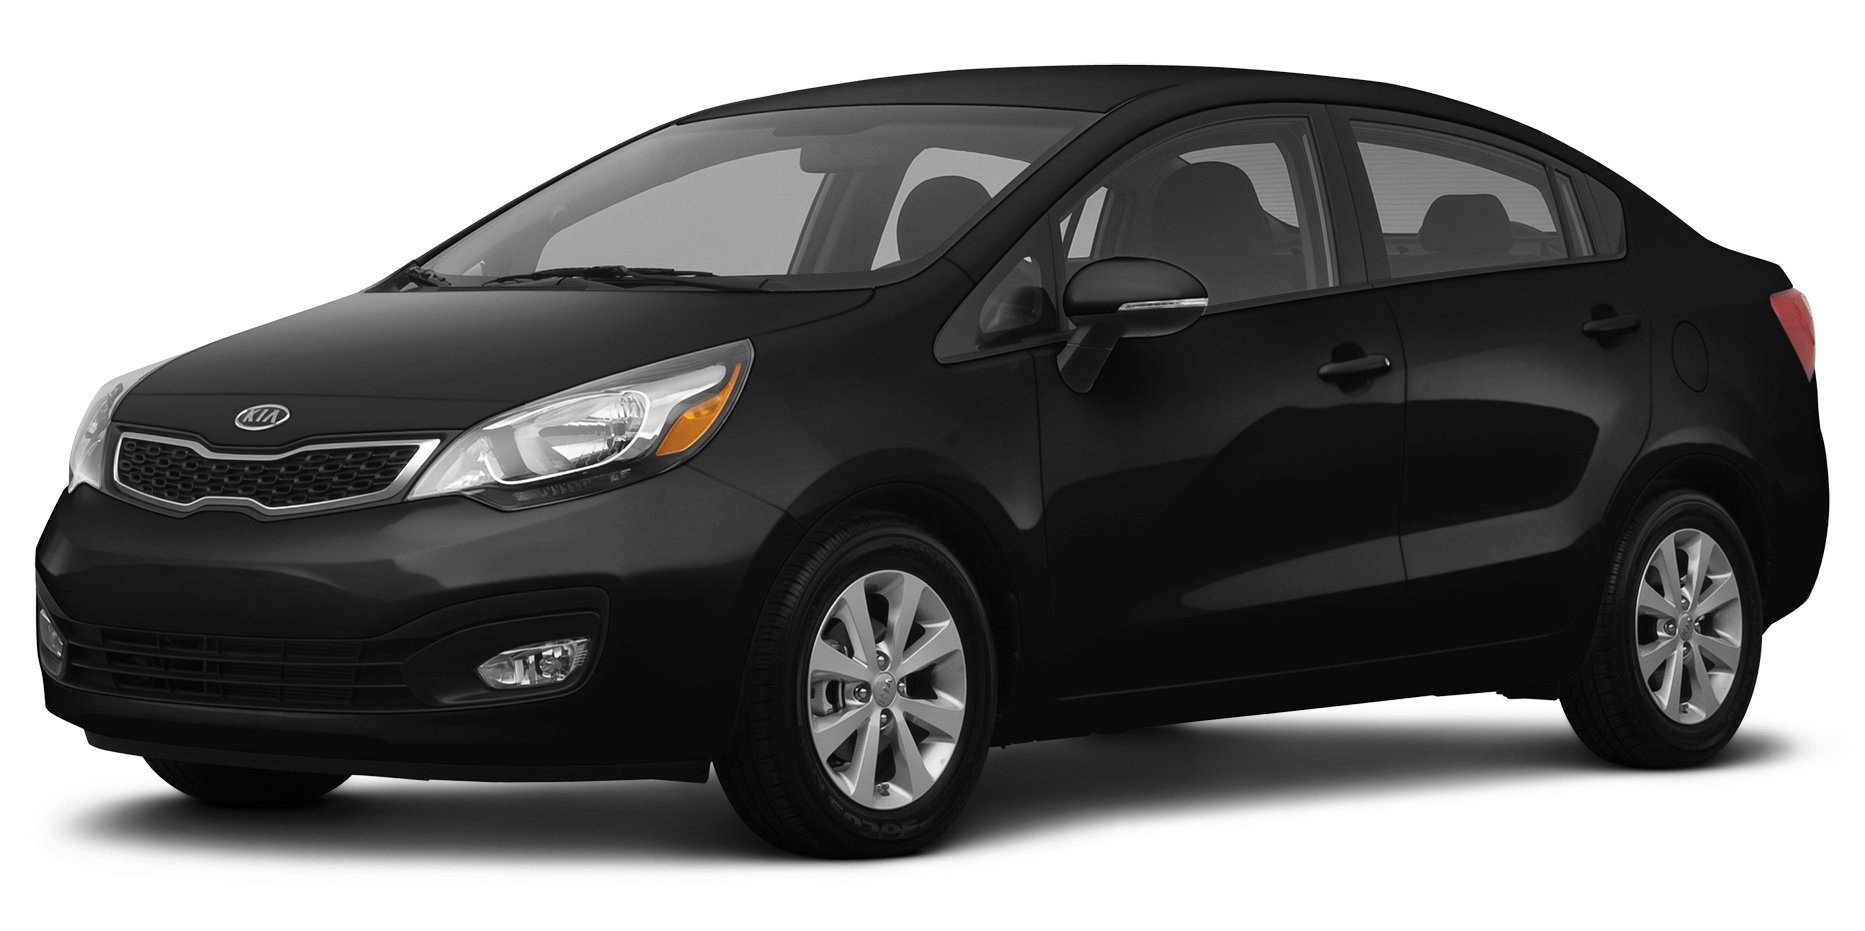 Amazon Com  2012 Kia Rio Reviews  Images  And Specs  Vehicles